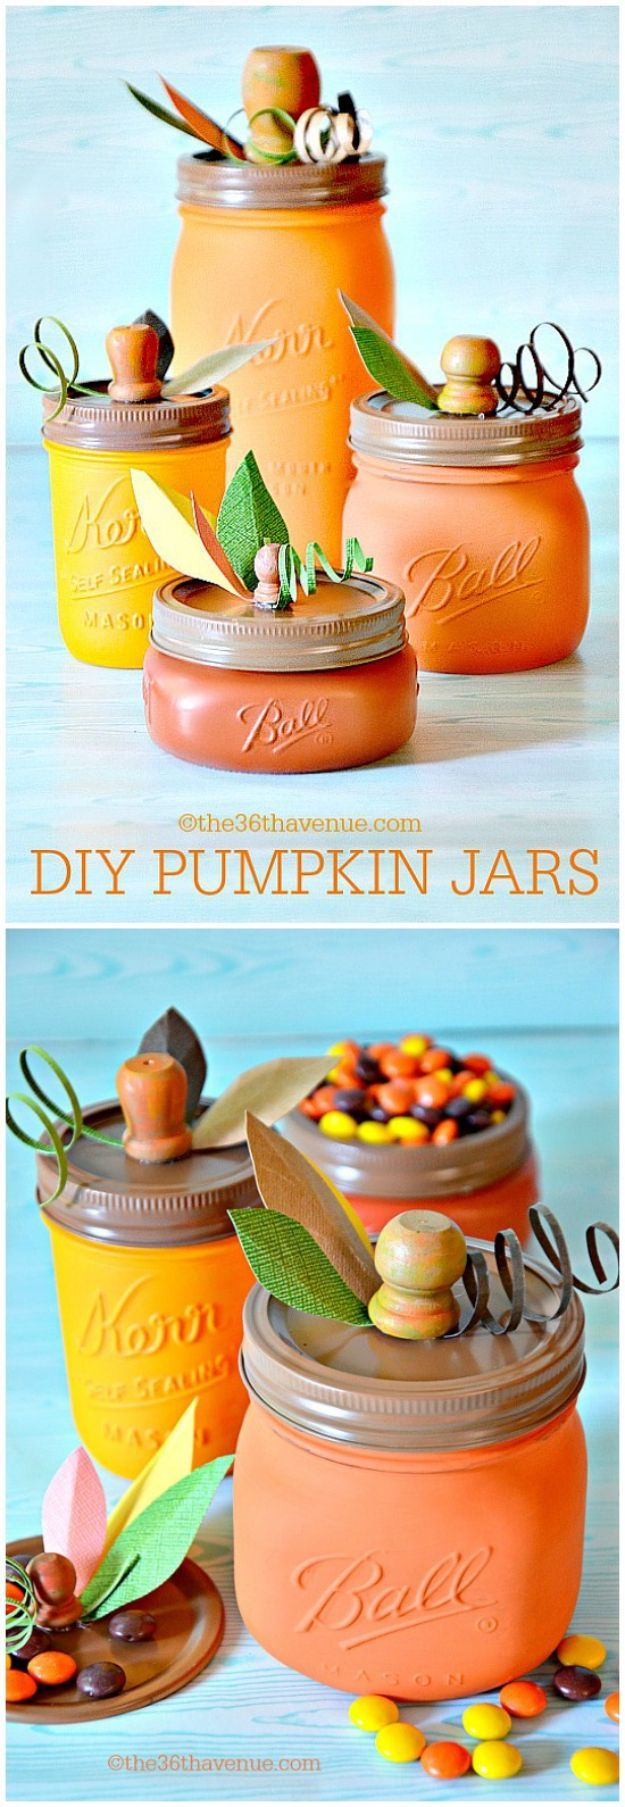 Best Mason Jar Crafts for Fall - DIY Pumpkin Mason Jars - DIY Mason Jar Ideas for Centerpieces, Wedding Decorations, Homemade Gifts, Craft Projects with Leaves, Flowers and Burlap, Painted Art, Candles and Luminaries for Cool Home Decor http://diyjoy.com/mason-jar-crafts-fall